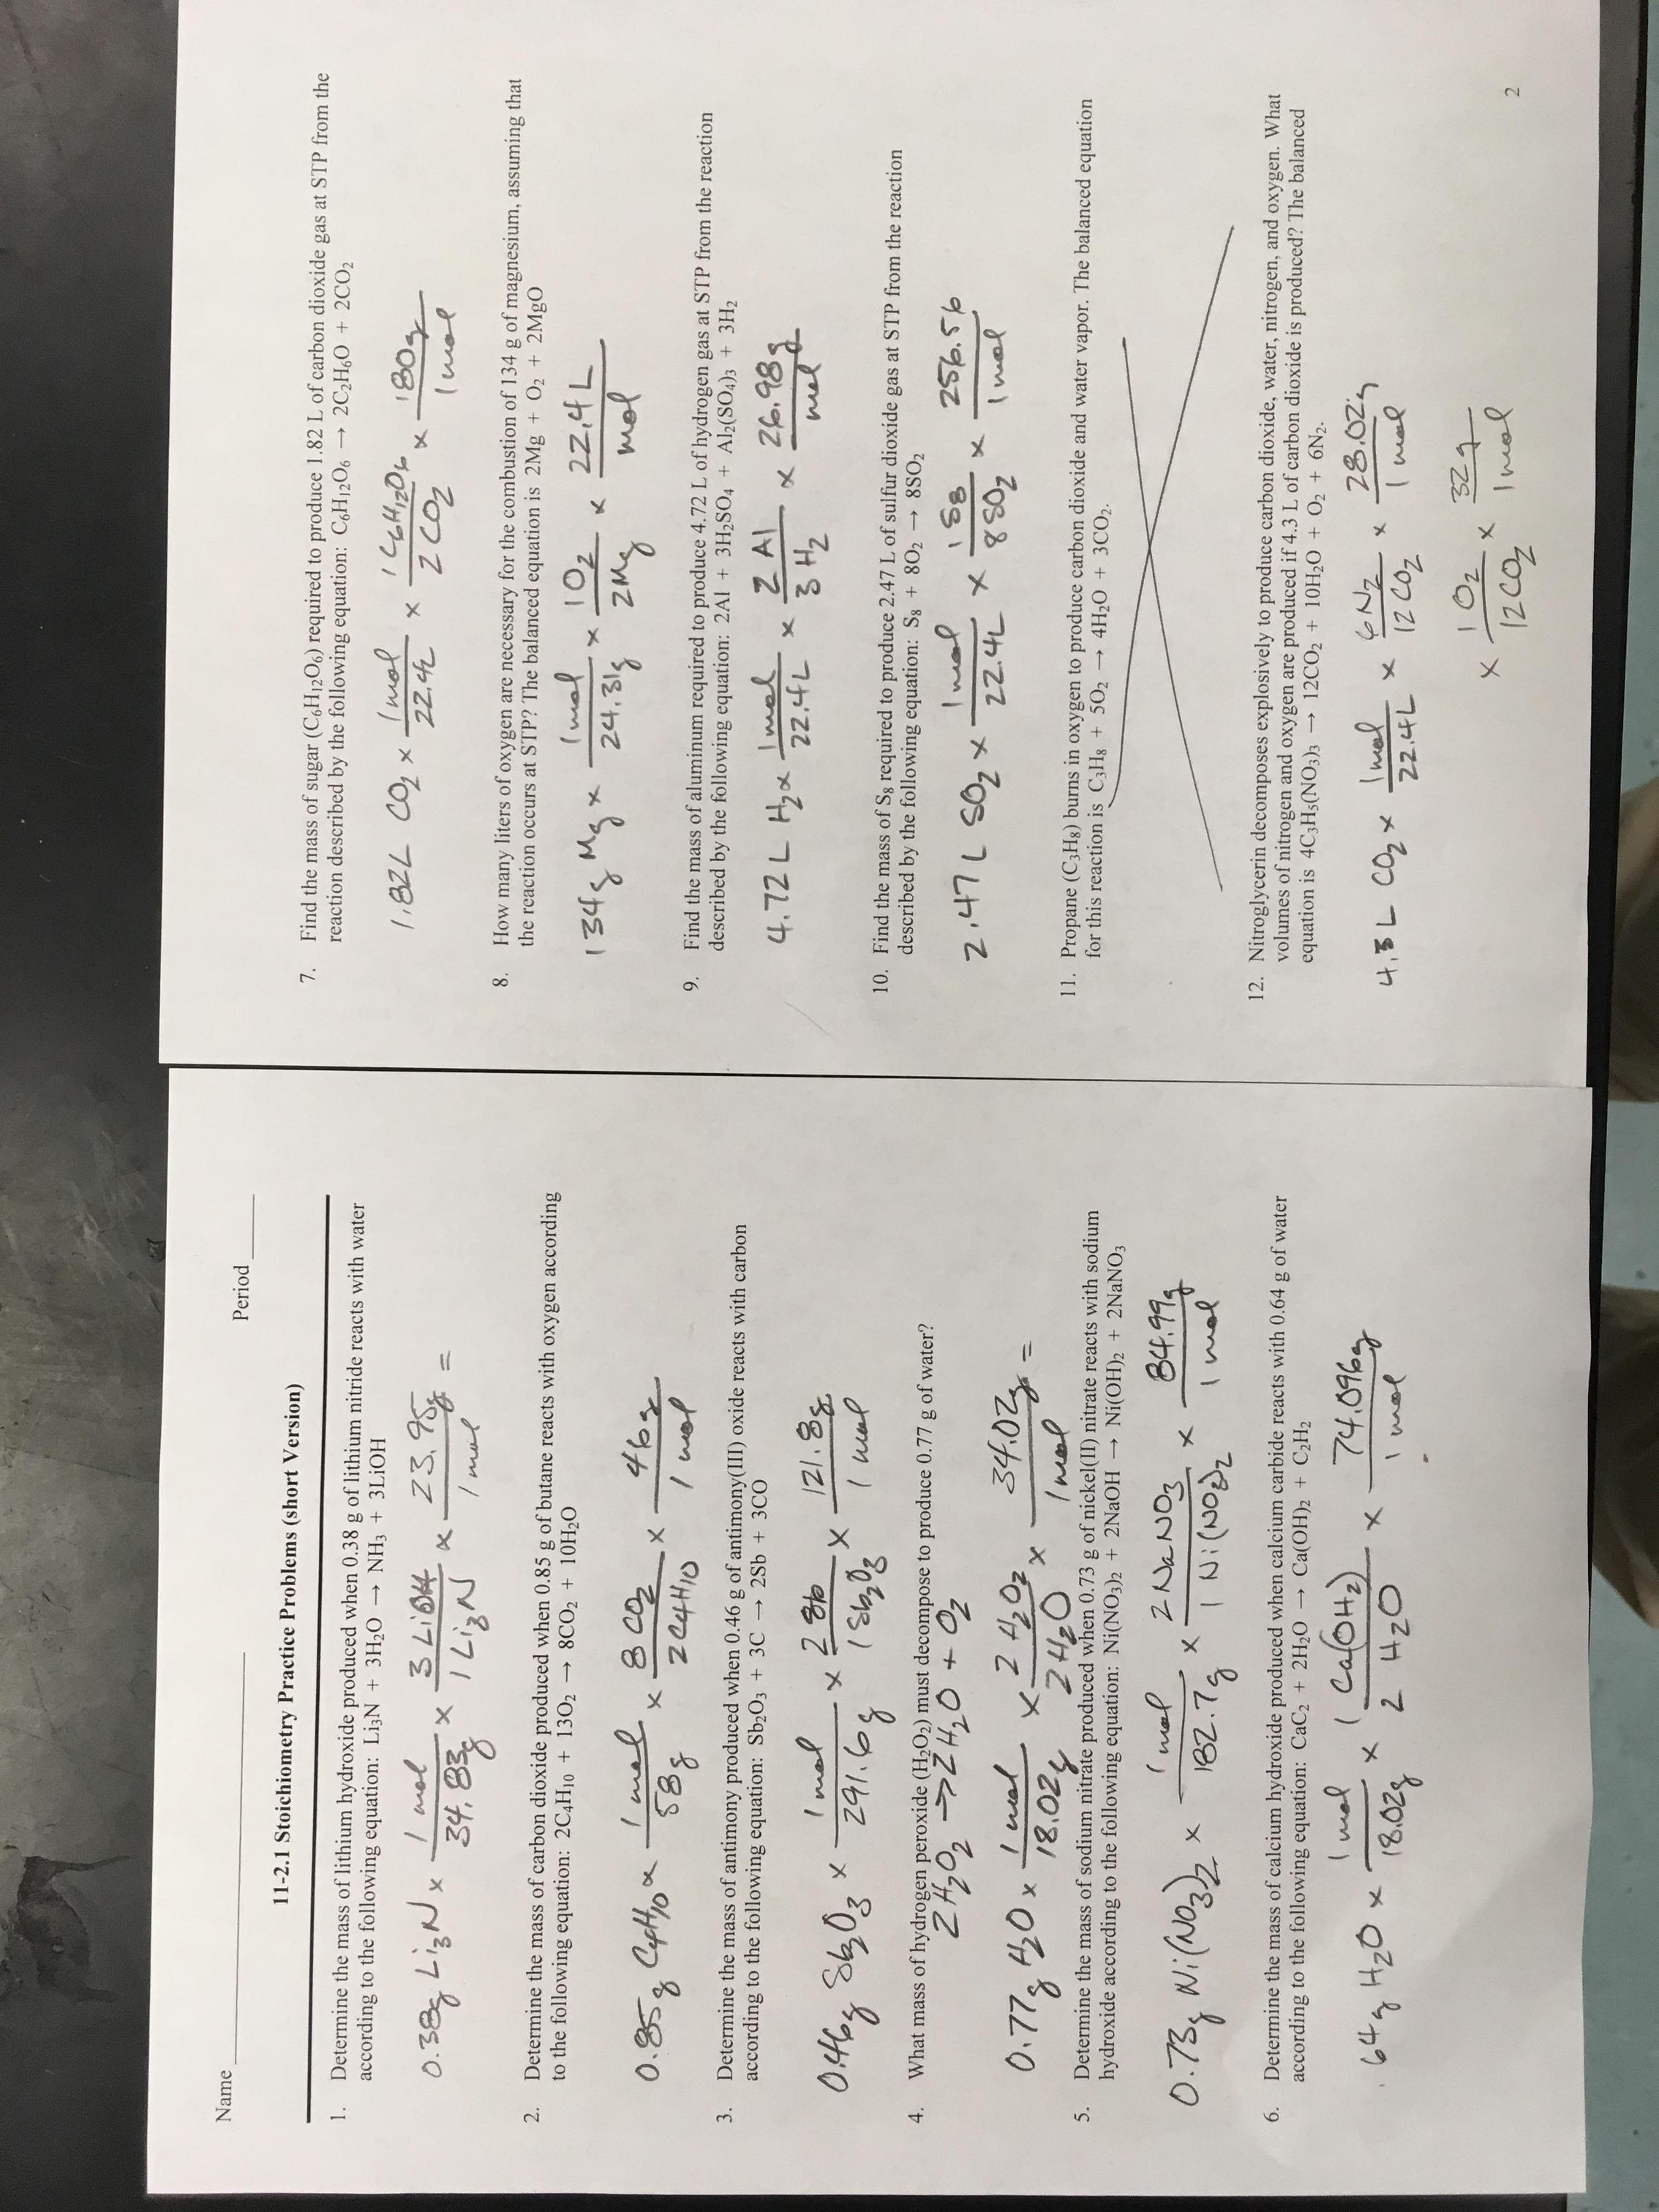 Gas Laws Practice Problems Worksheet Answers   Briefencounters in addition  likewise stoiprac07all   Honors Chemistry Worksheet 3 Stoichiometry Practice also 15 Best Images of Specific Heat Worksheet Answer Key   Specific Heat furthermore Foothill High likewise Stoichiometry Practice Worksheet Answers   Kidz Activities further Sd Practice Problems Worksheet For Kids   Free Educations Kids besides Stoichiometry problems and answers pdf besides  furthermore Stoichiometry practice worksheet answers effortless quintessence 1 also Stoichiometry Practice Problems Worksheet The best worksheets image moreover Stoichiometry Worksheet with Answer Key Elegant Stoichiometry furthermore Stoichiometry Practice Worksheet   Veterinariancolleges besides  in addition 16 Best Of Stoichiometry Worksheet Answers   Thepoweltonpizza together with 15  notes on percent yield and m to m stoichiometry with. on stoichiometry practice problems worksheet answers